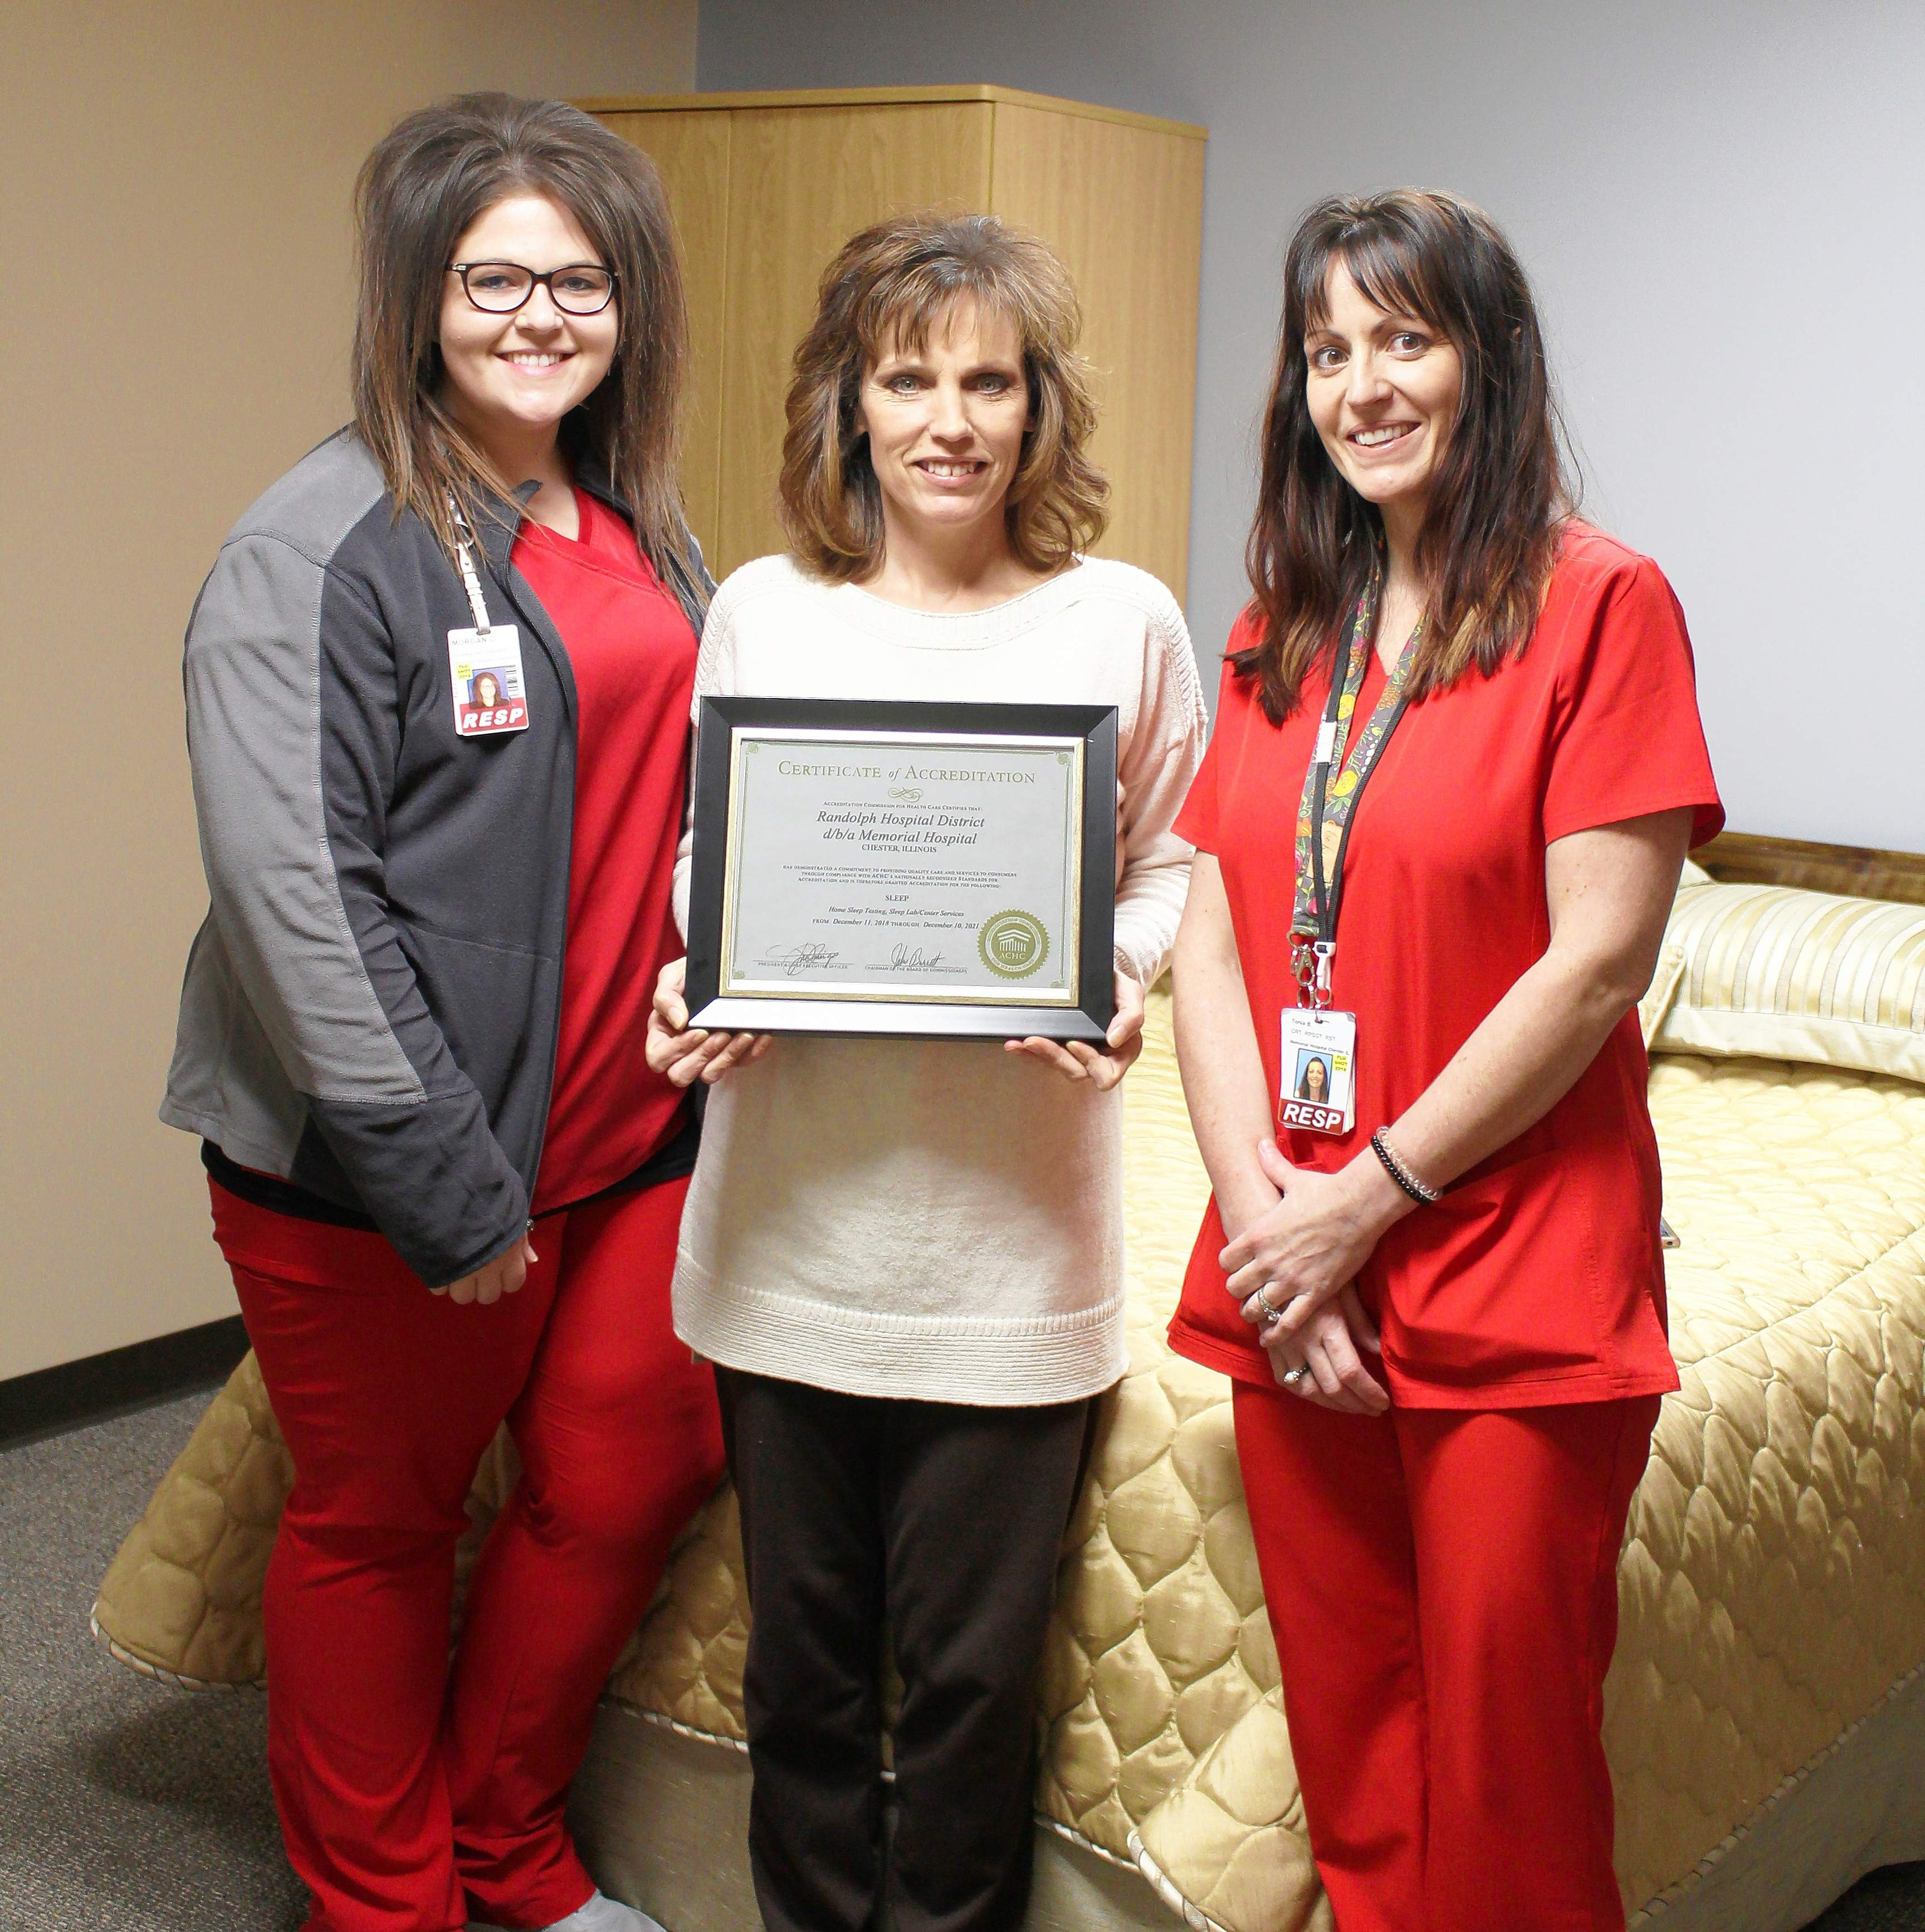 From left, Sleep Tech Morgan Cash; Georgia Allen, director of Cardiopulmonary/Sleep Lab and Tonia Millsap celebrate the accreditation they worked hard to obtain.